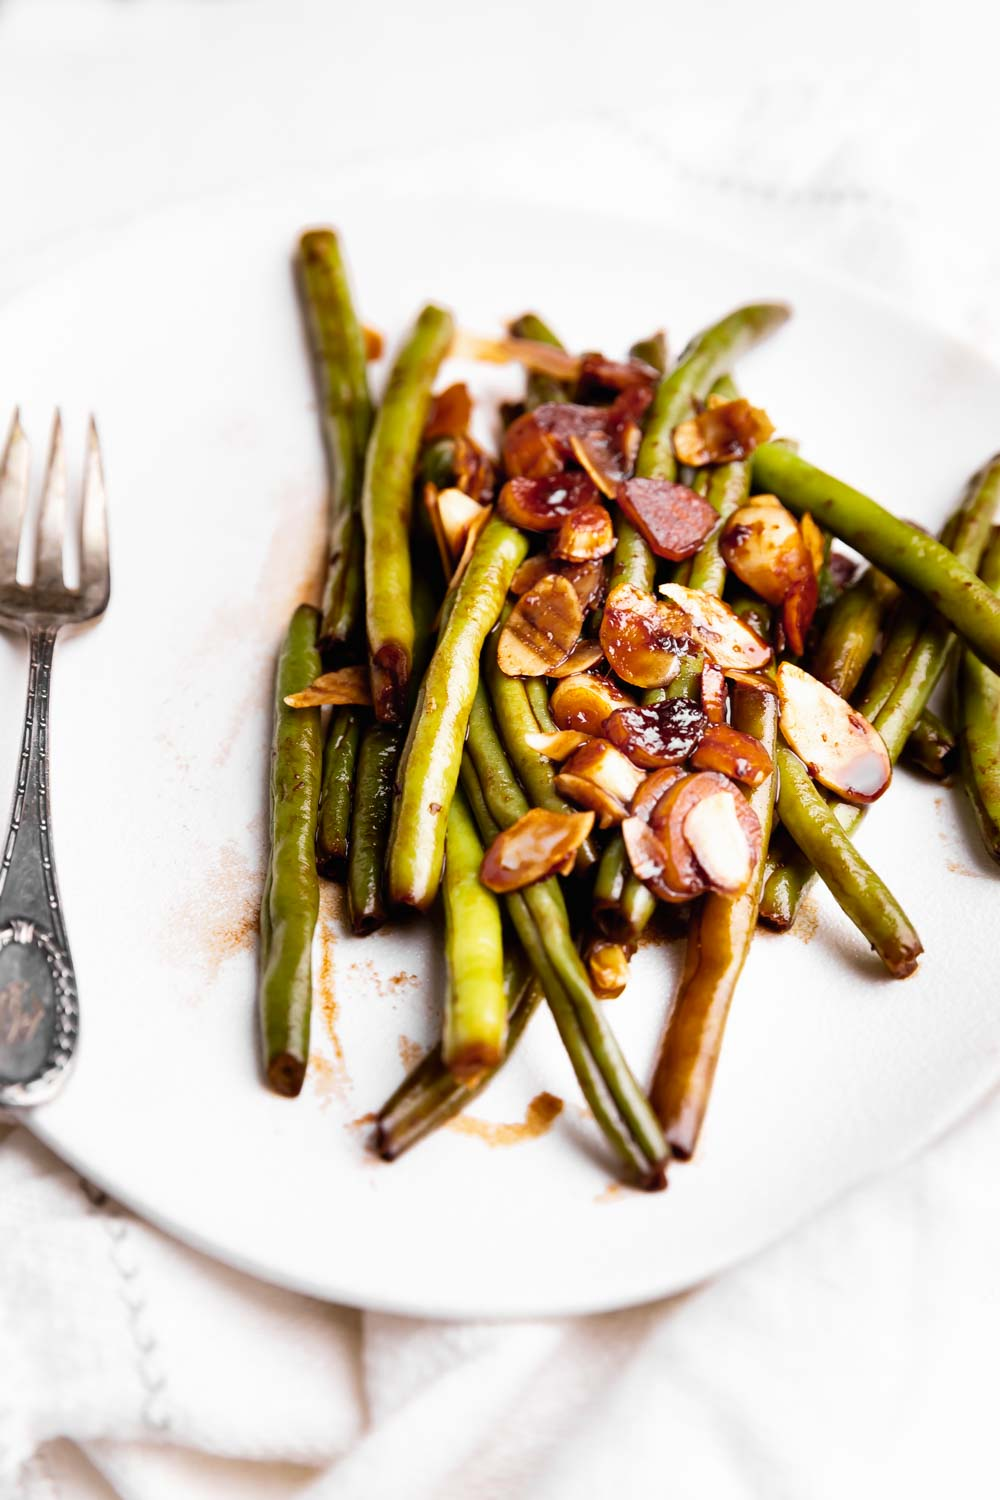 garlicky green beans on a white plate with a fork